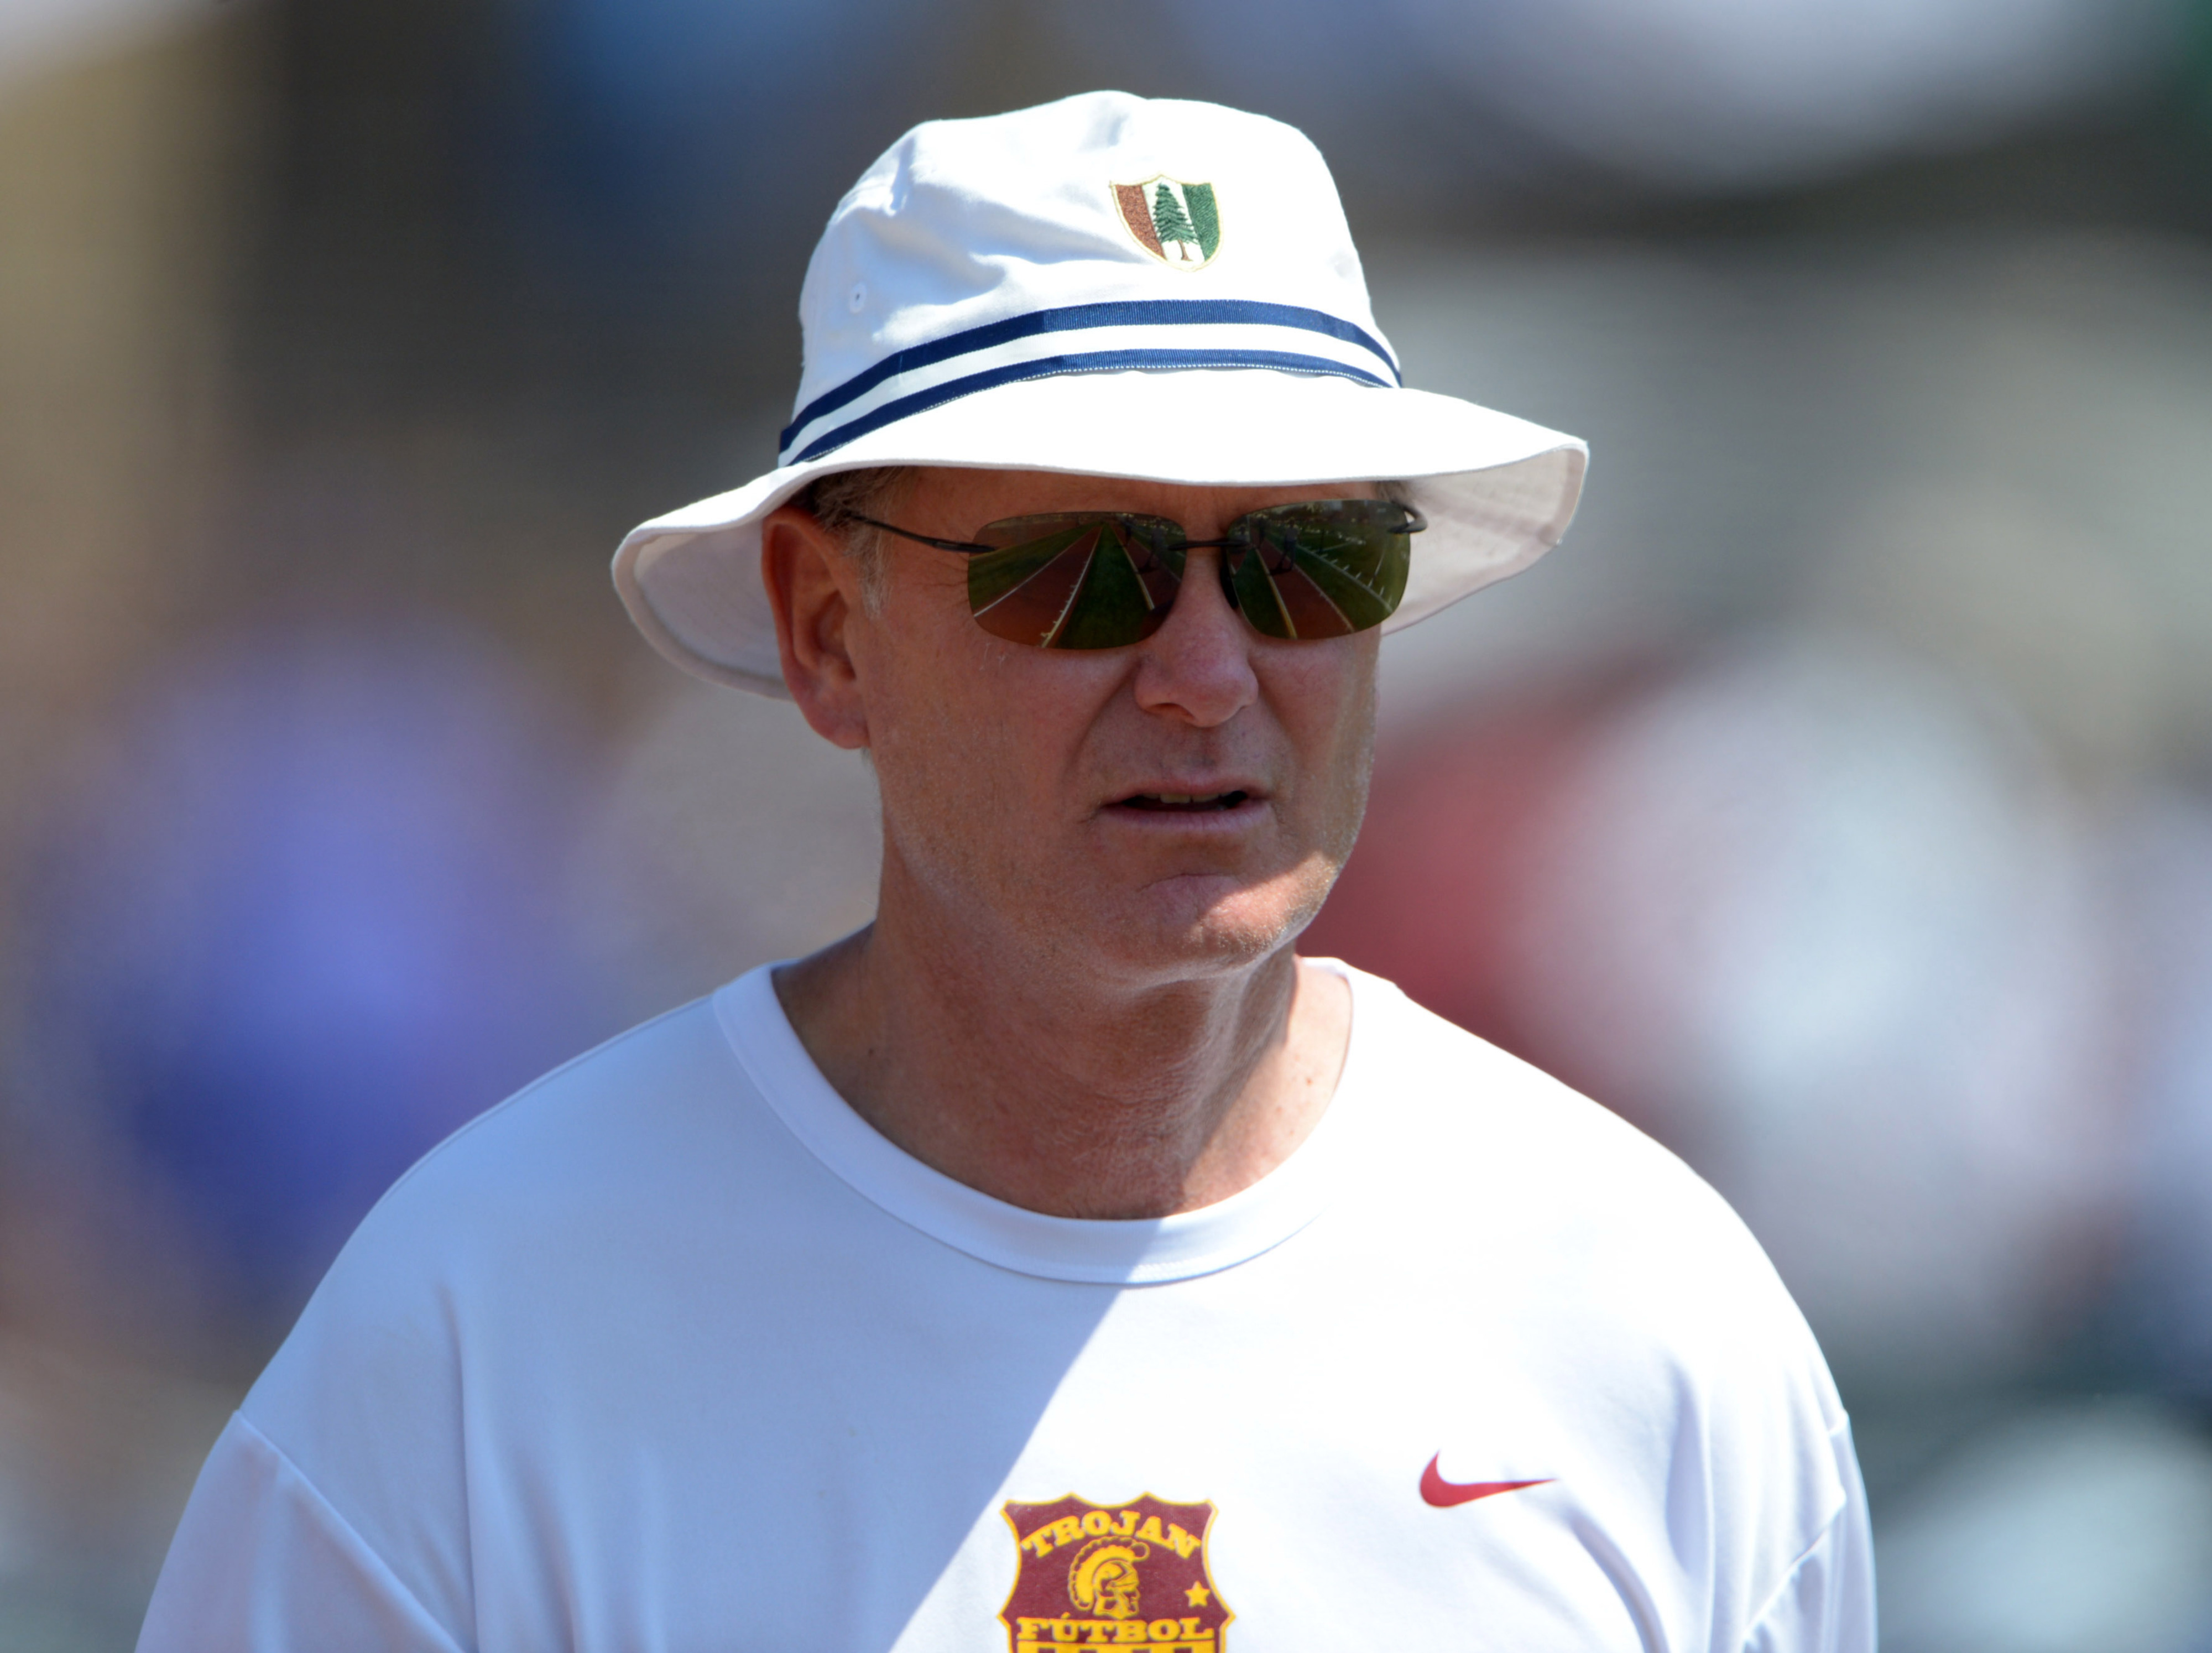 Pat Haden did not score, nor have an assist in the game.